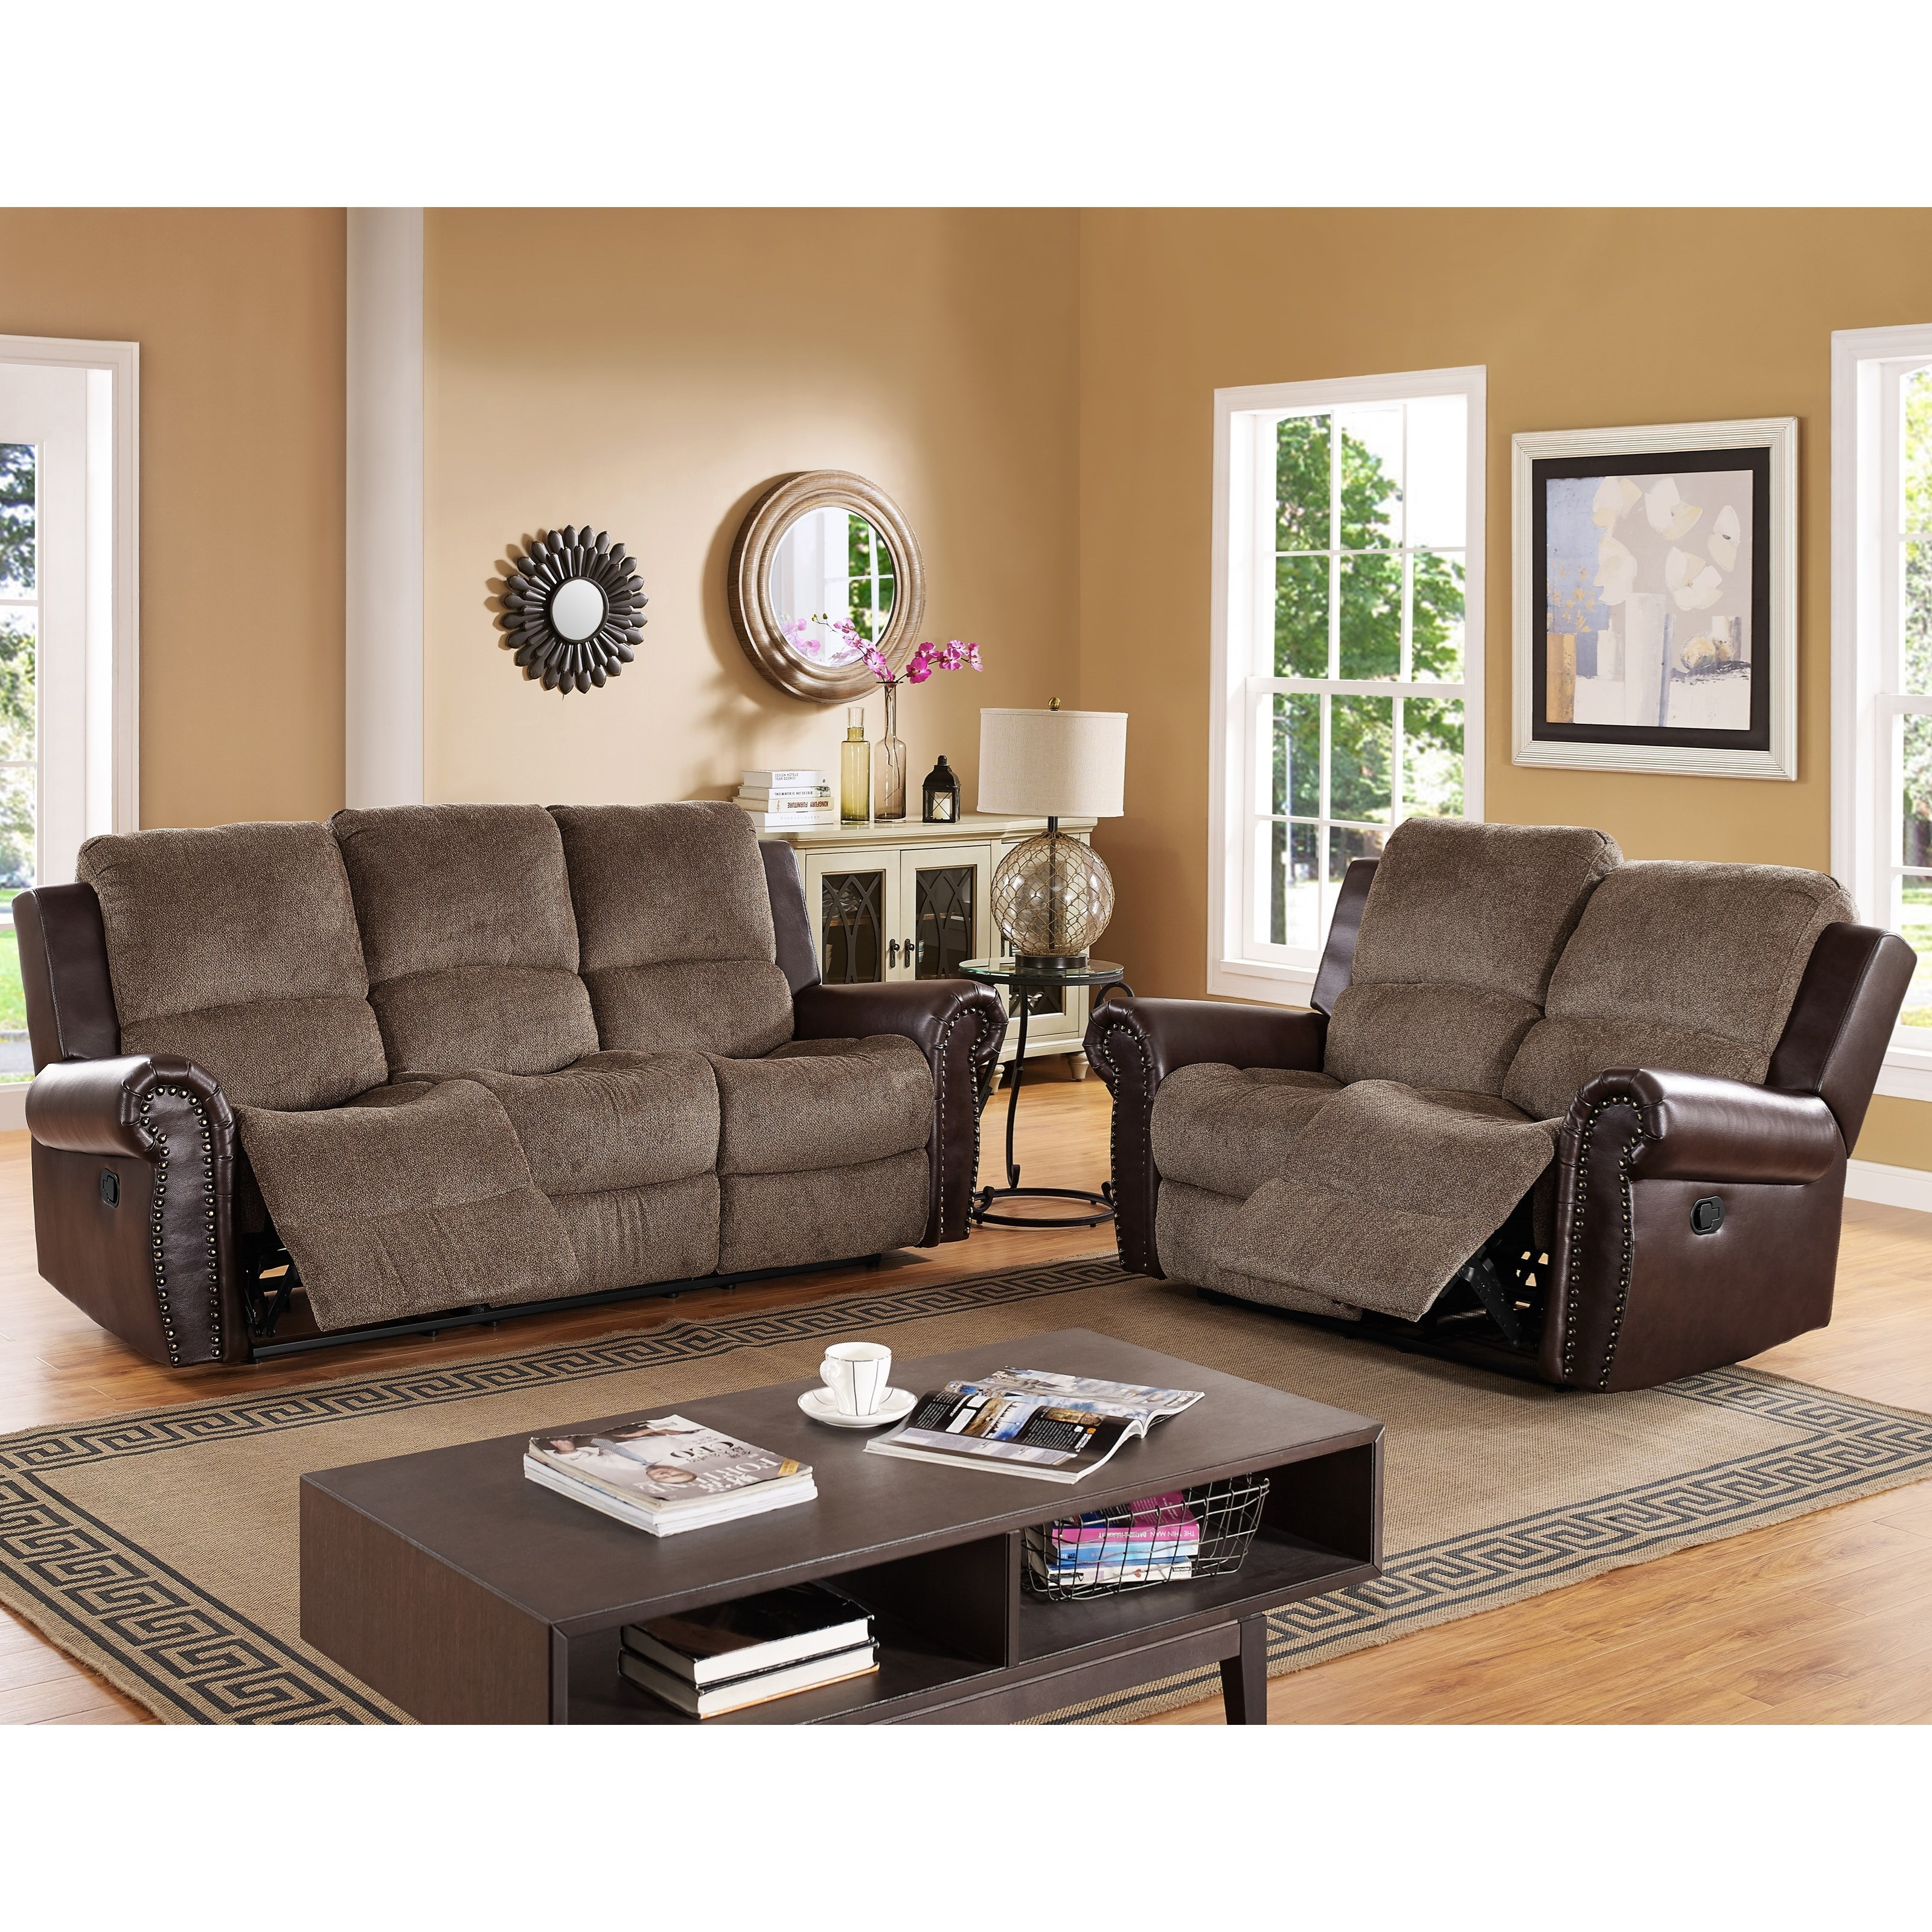 New Classic Callahan Reclining Living Room Group - Item Number: 2239 Reclining Living Room Group 1